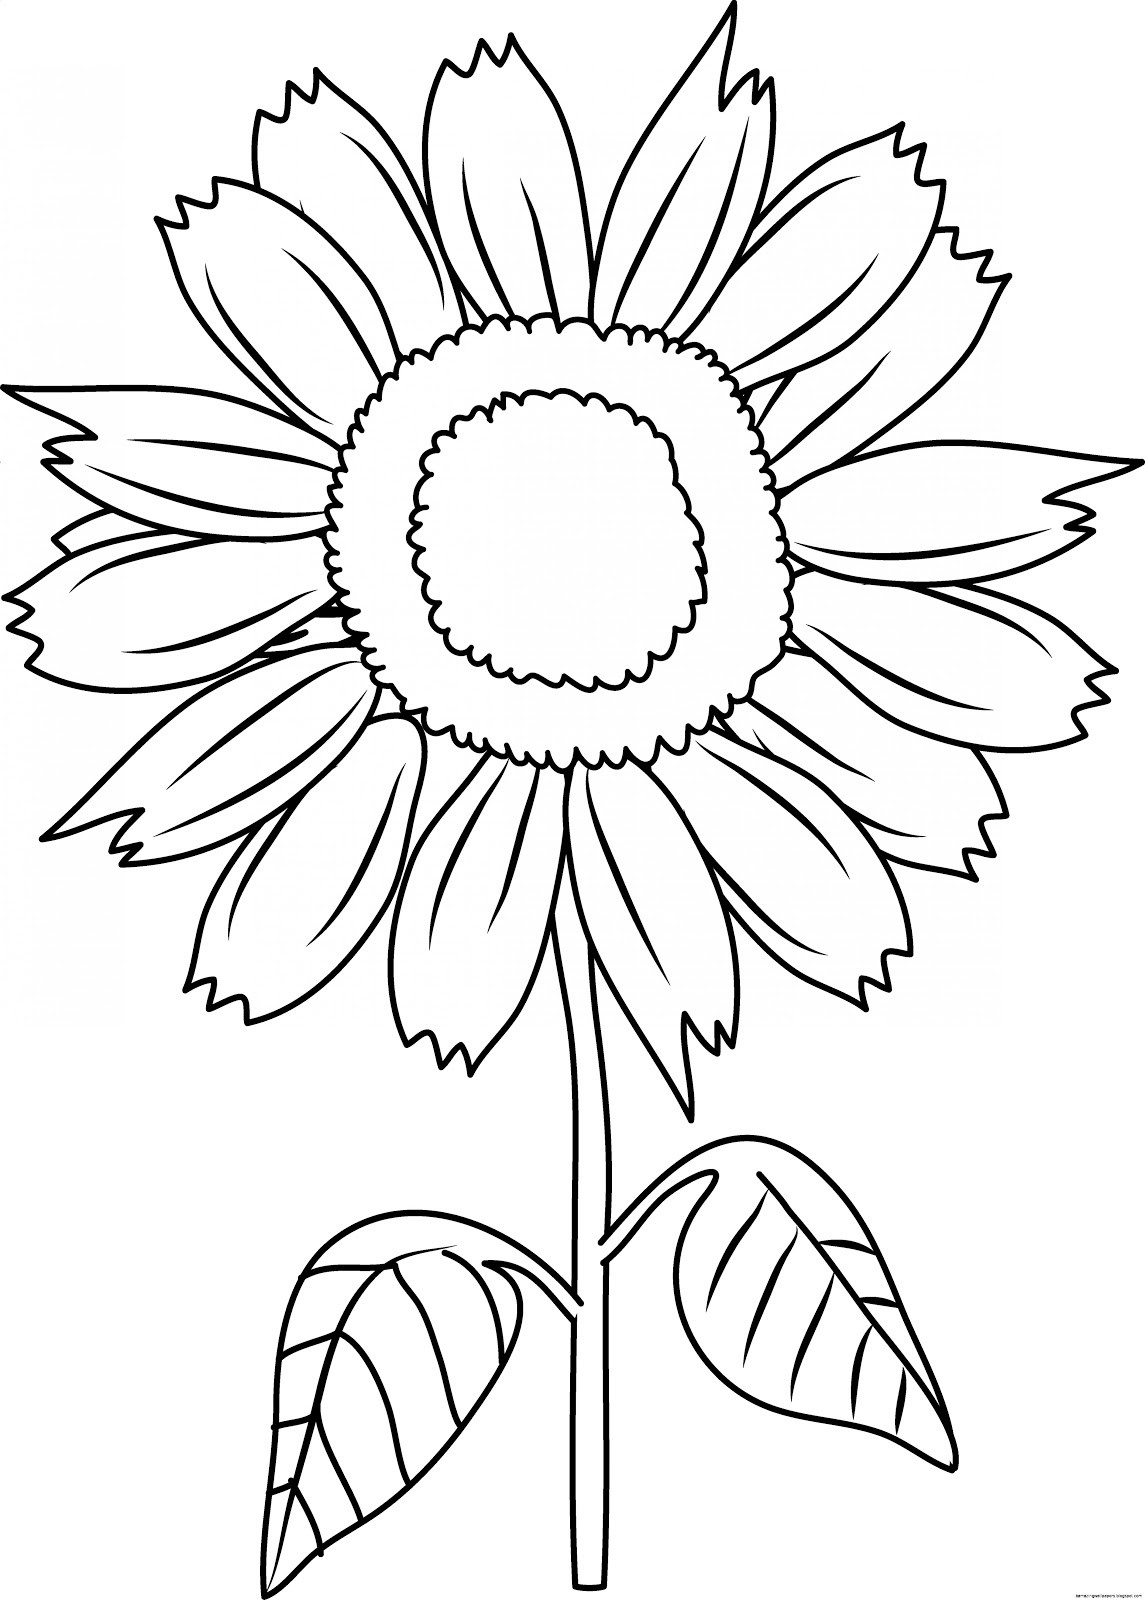 Outline-Drawing